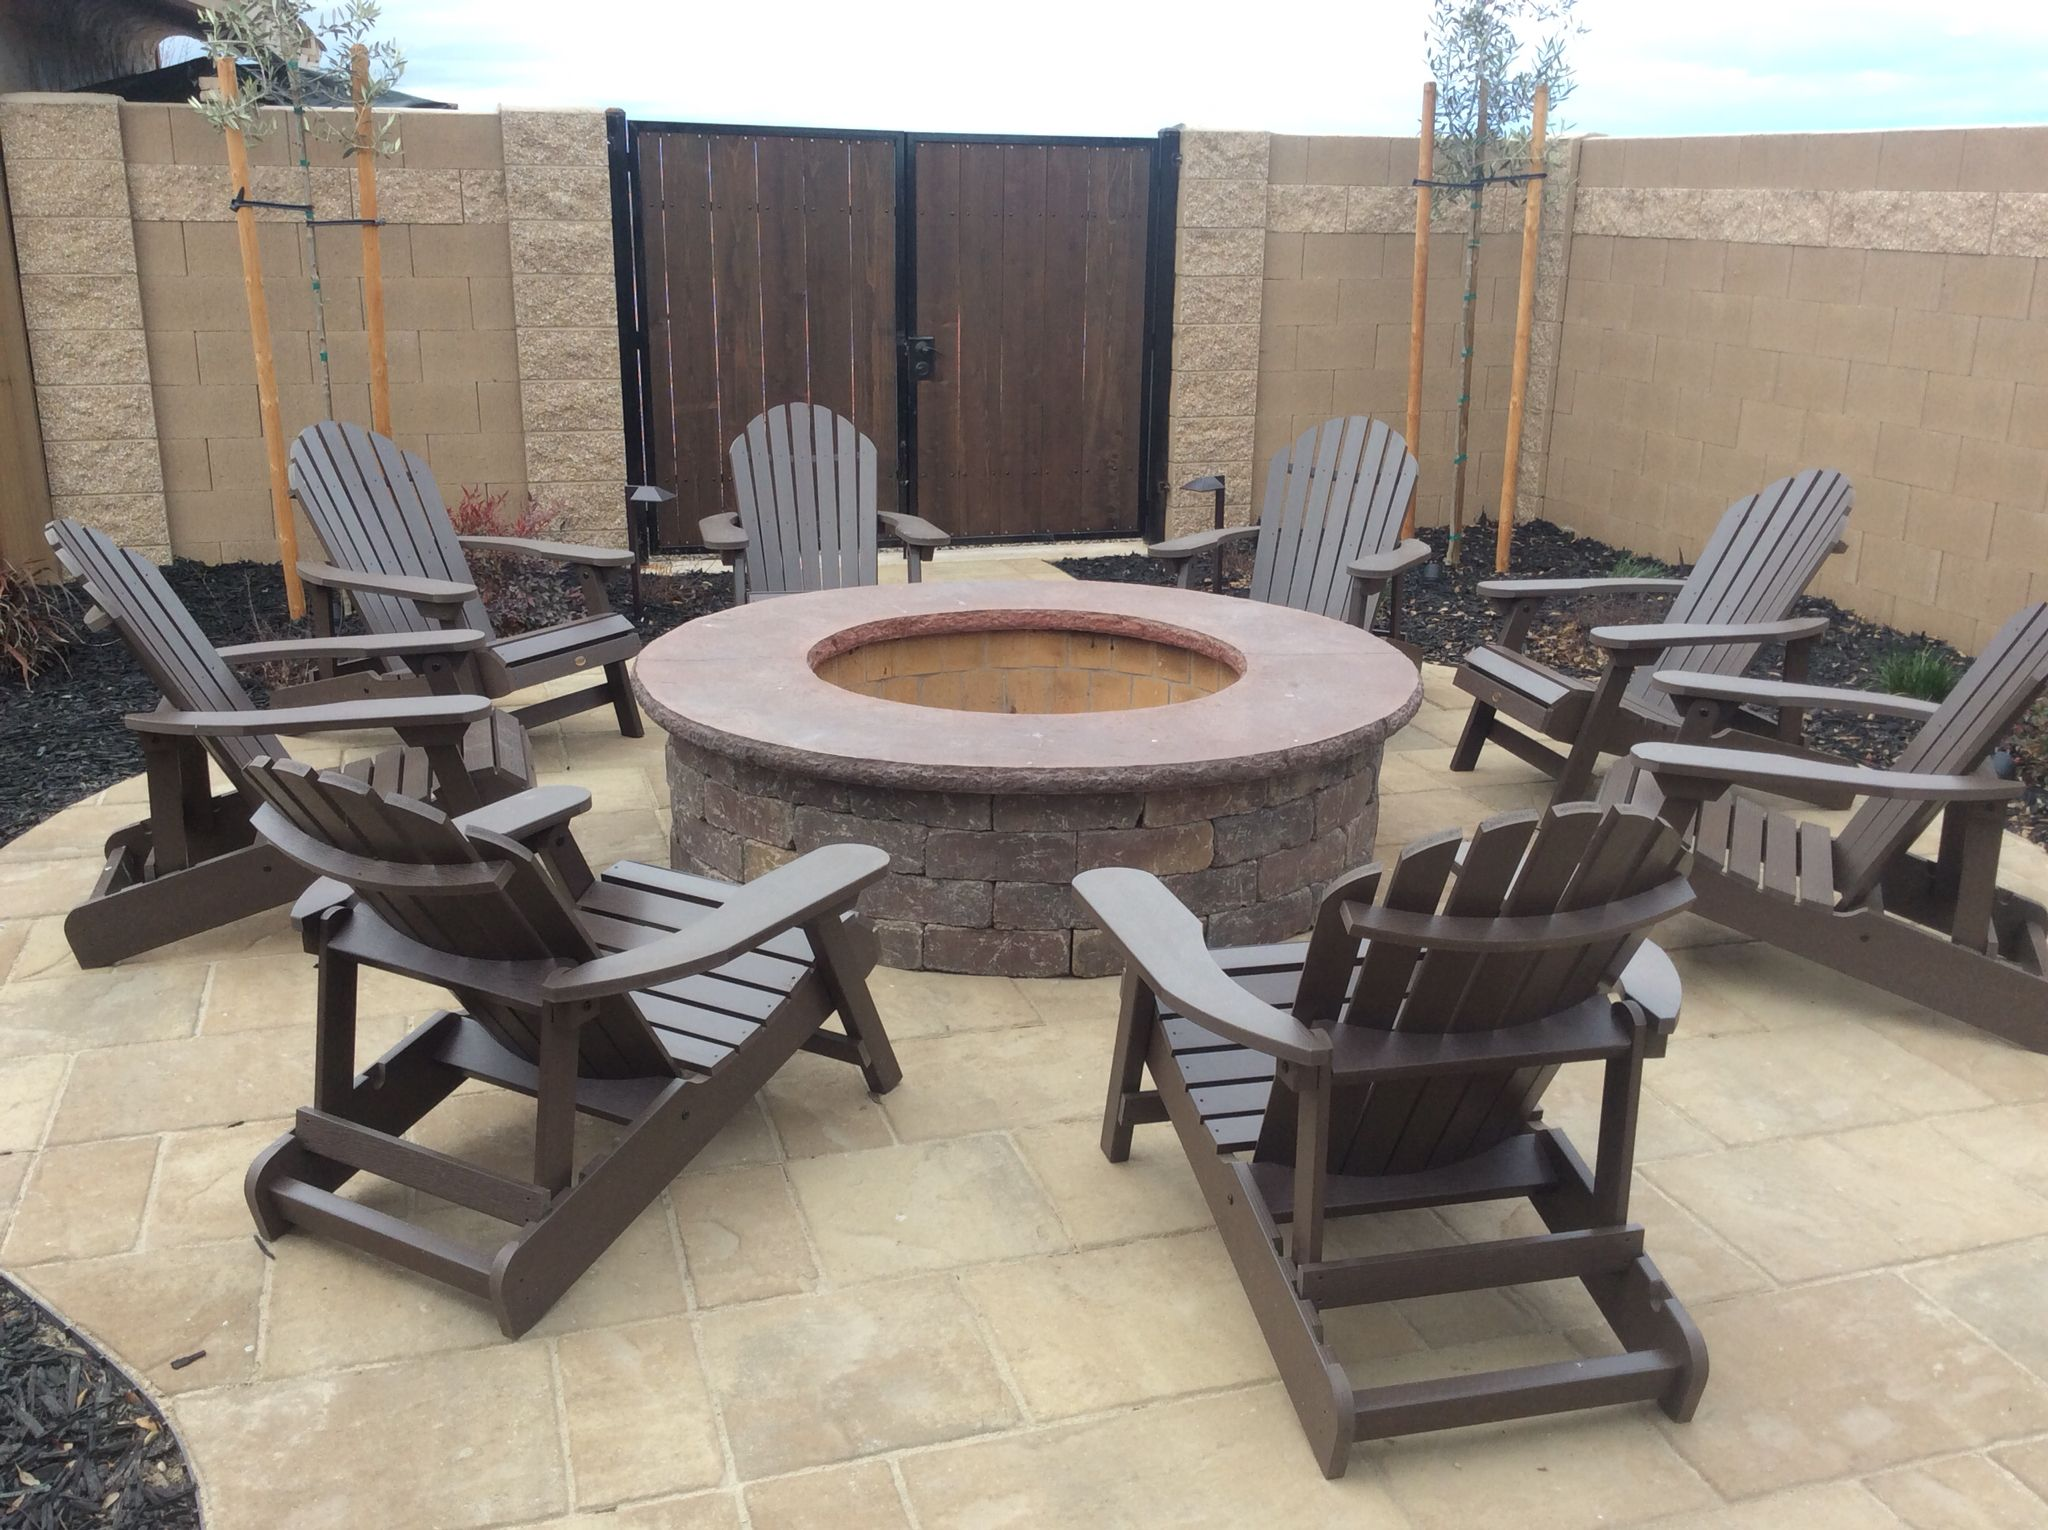 andy souza masonry fire pit stone design outdoor entertainment